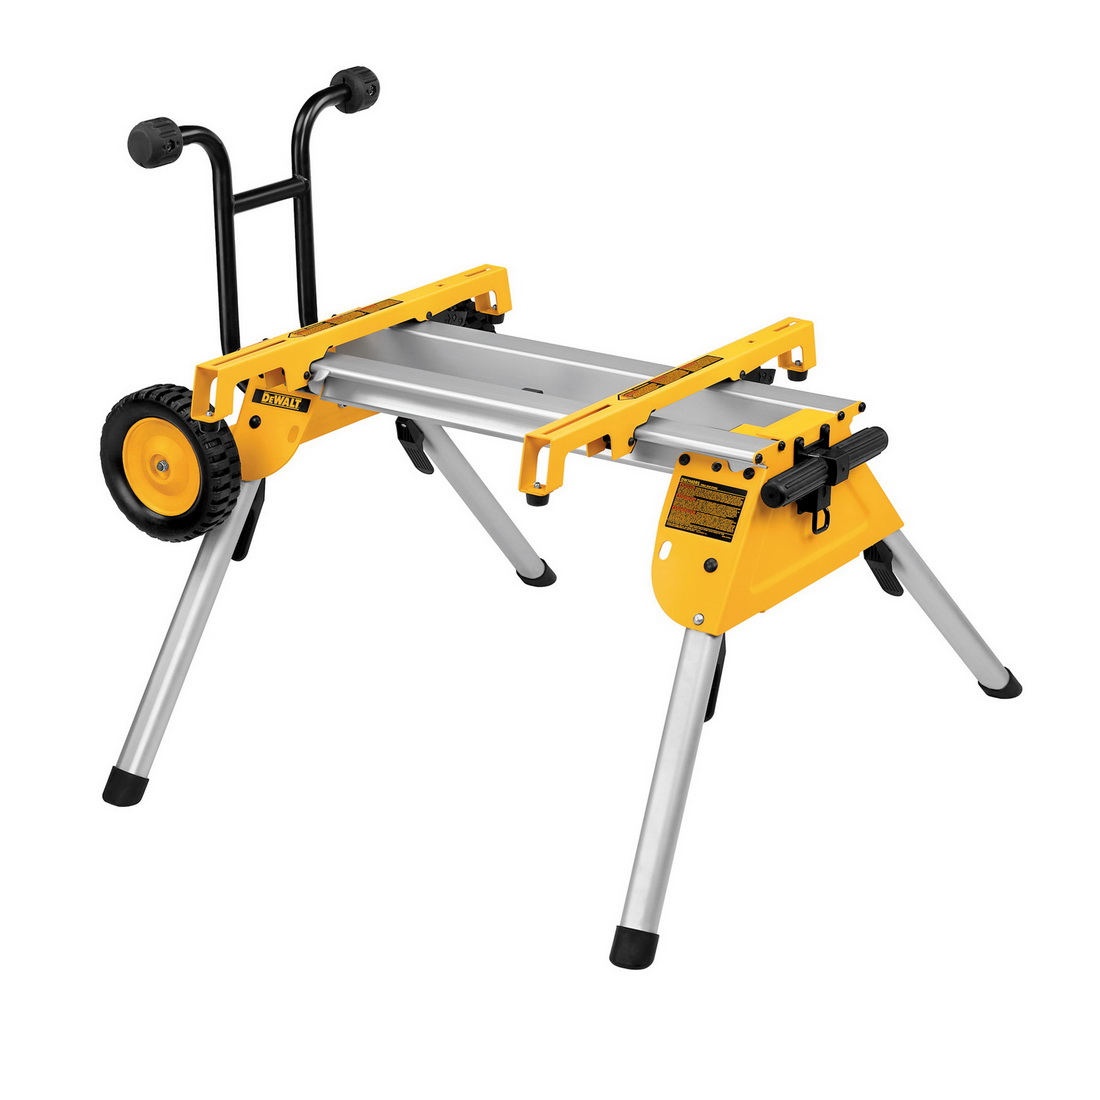 910 x 830mm 68Kg Heavy Duty Rolling Table Saw Stand Aluminium